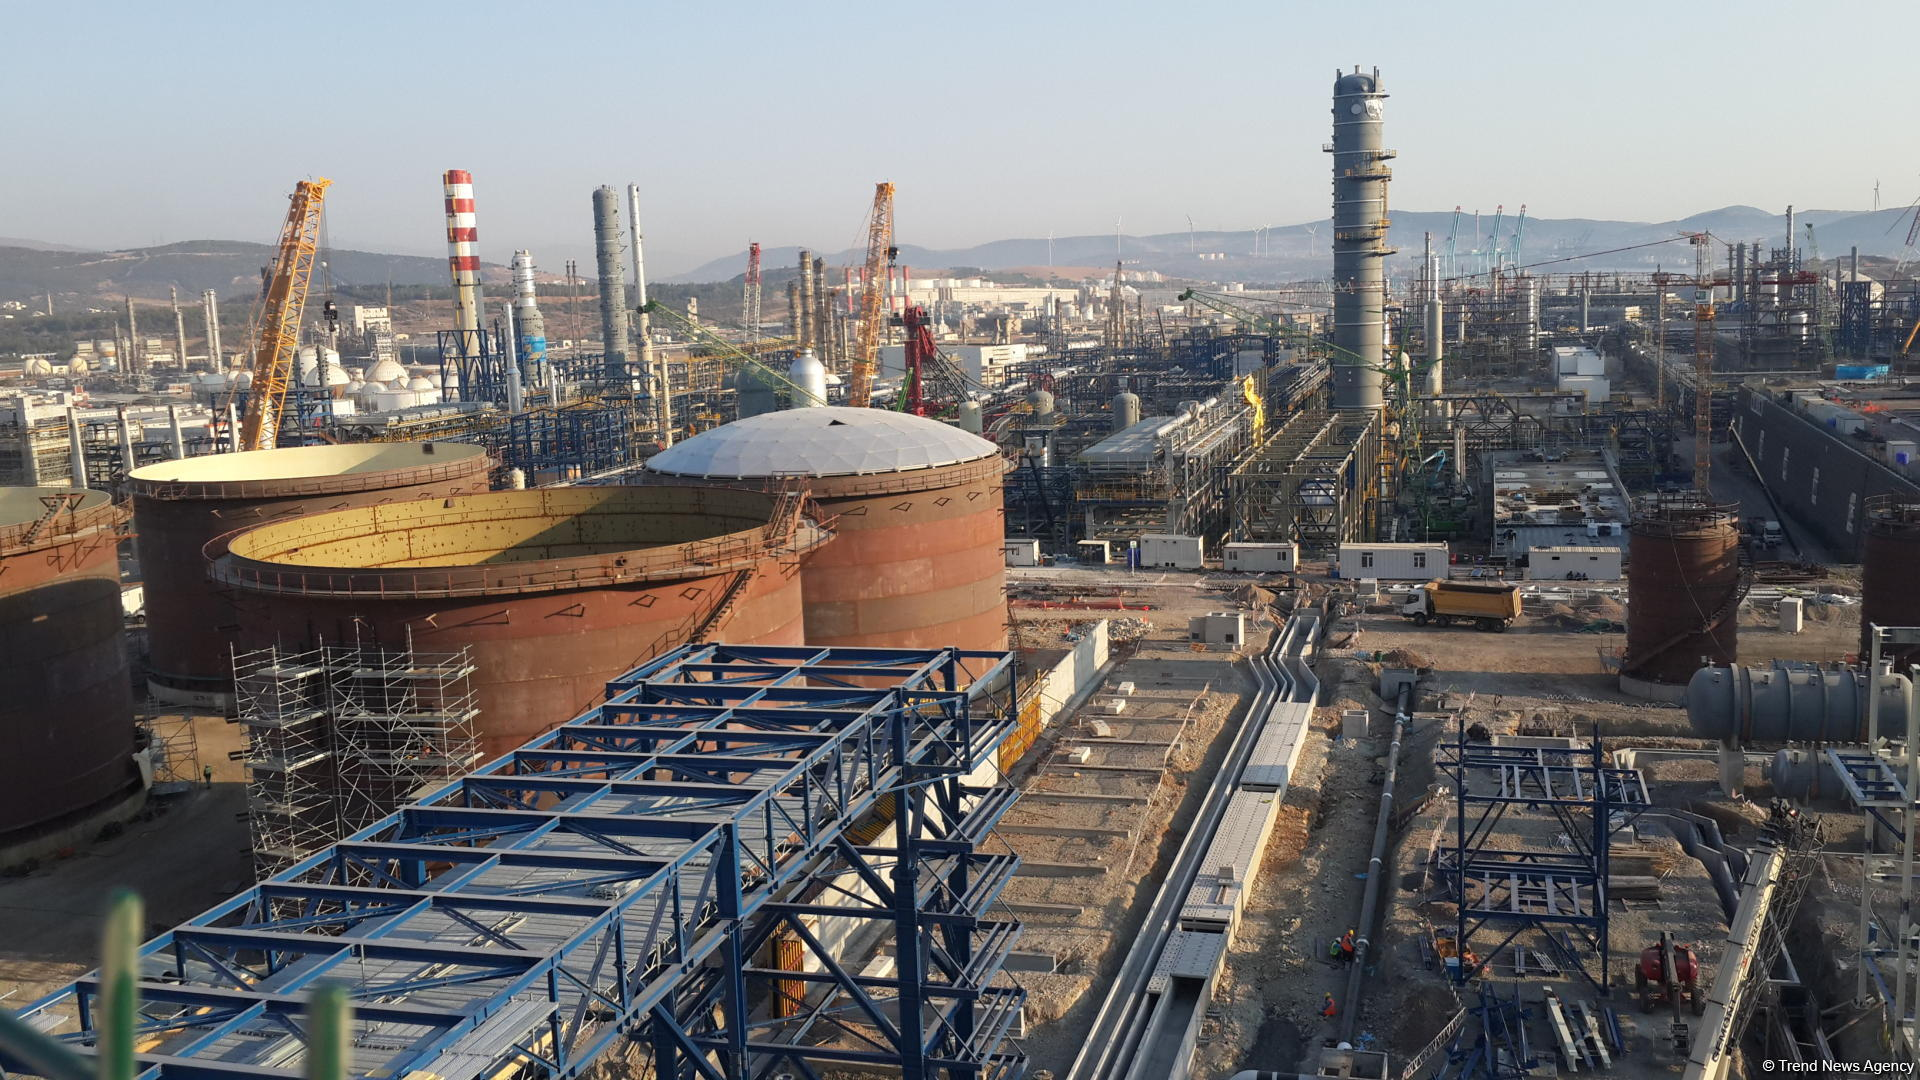 SOCAR Turkey in talks with UK company over petrochemical project